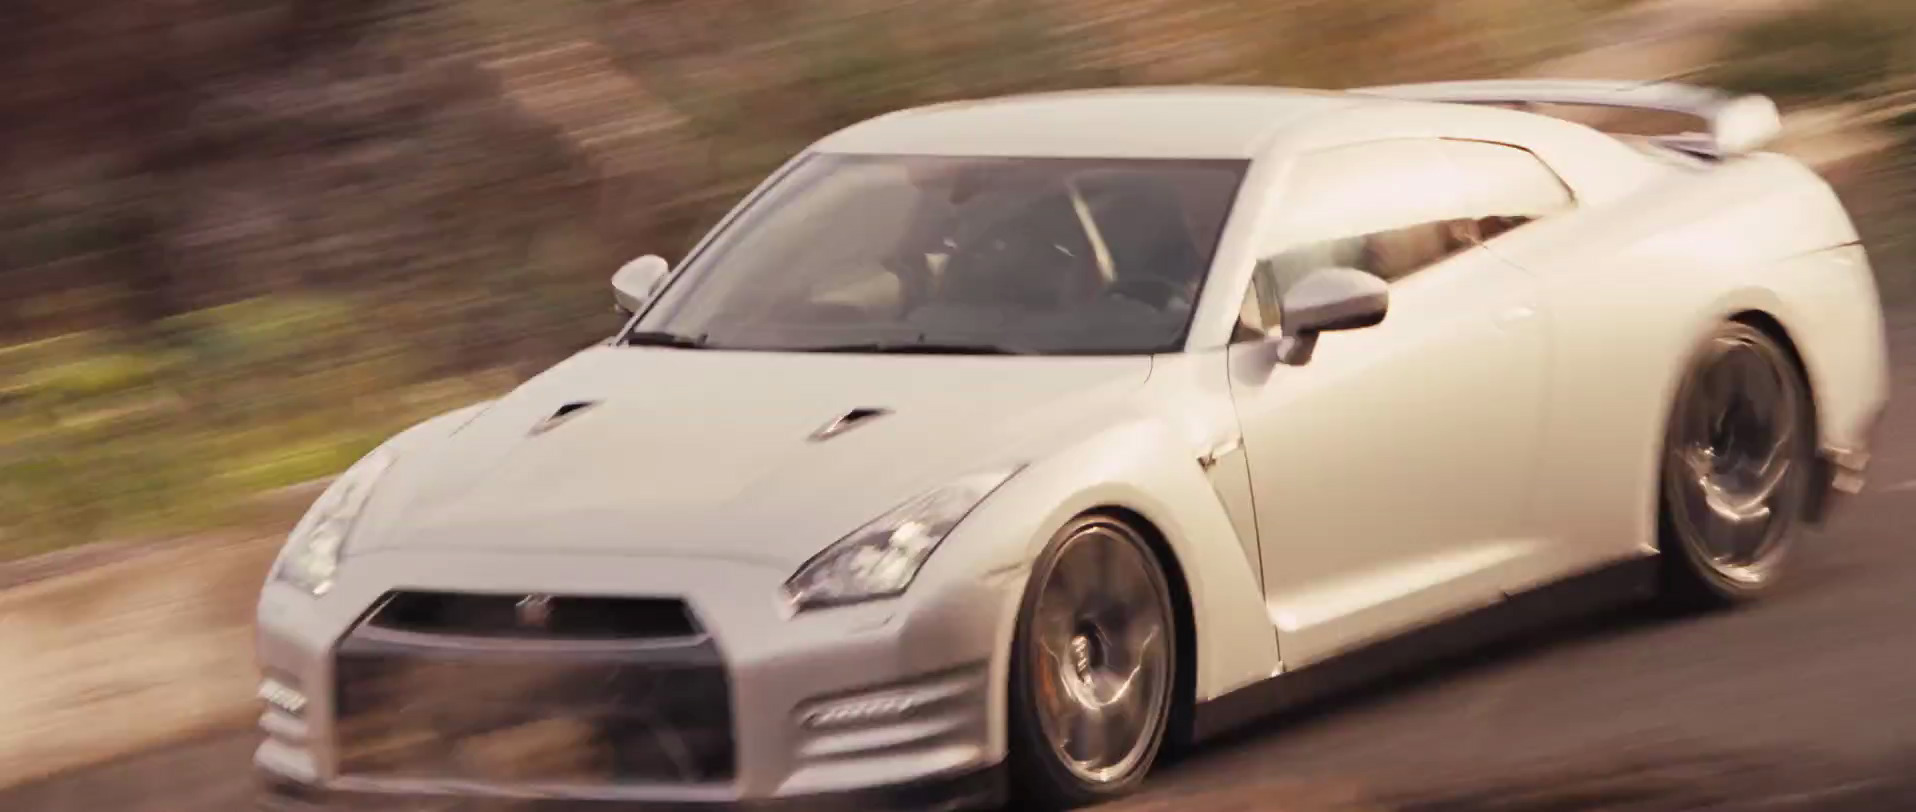 2011 nissan gt r r35 the fast and the furious wiki. Black Bedroom Furniture Sets. Home Design Ideas